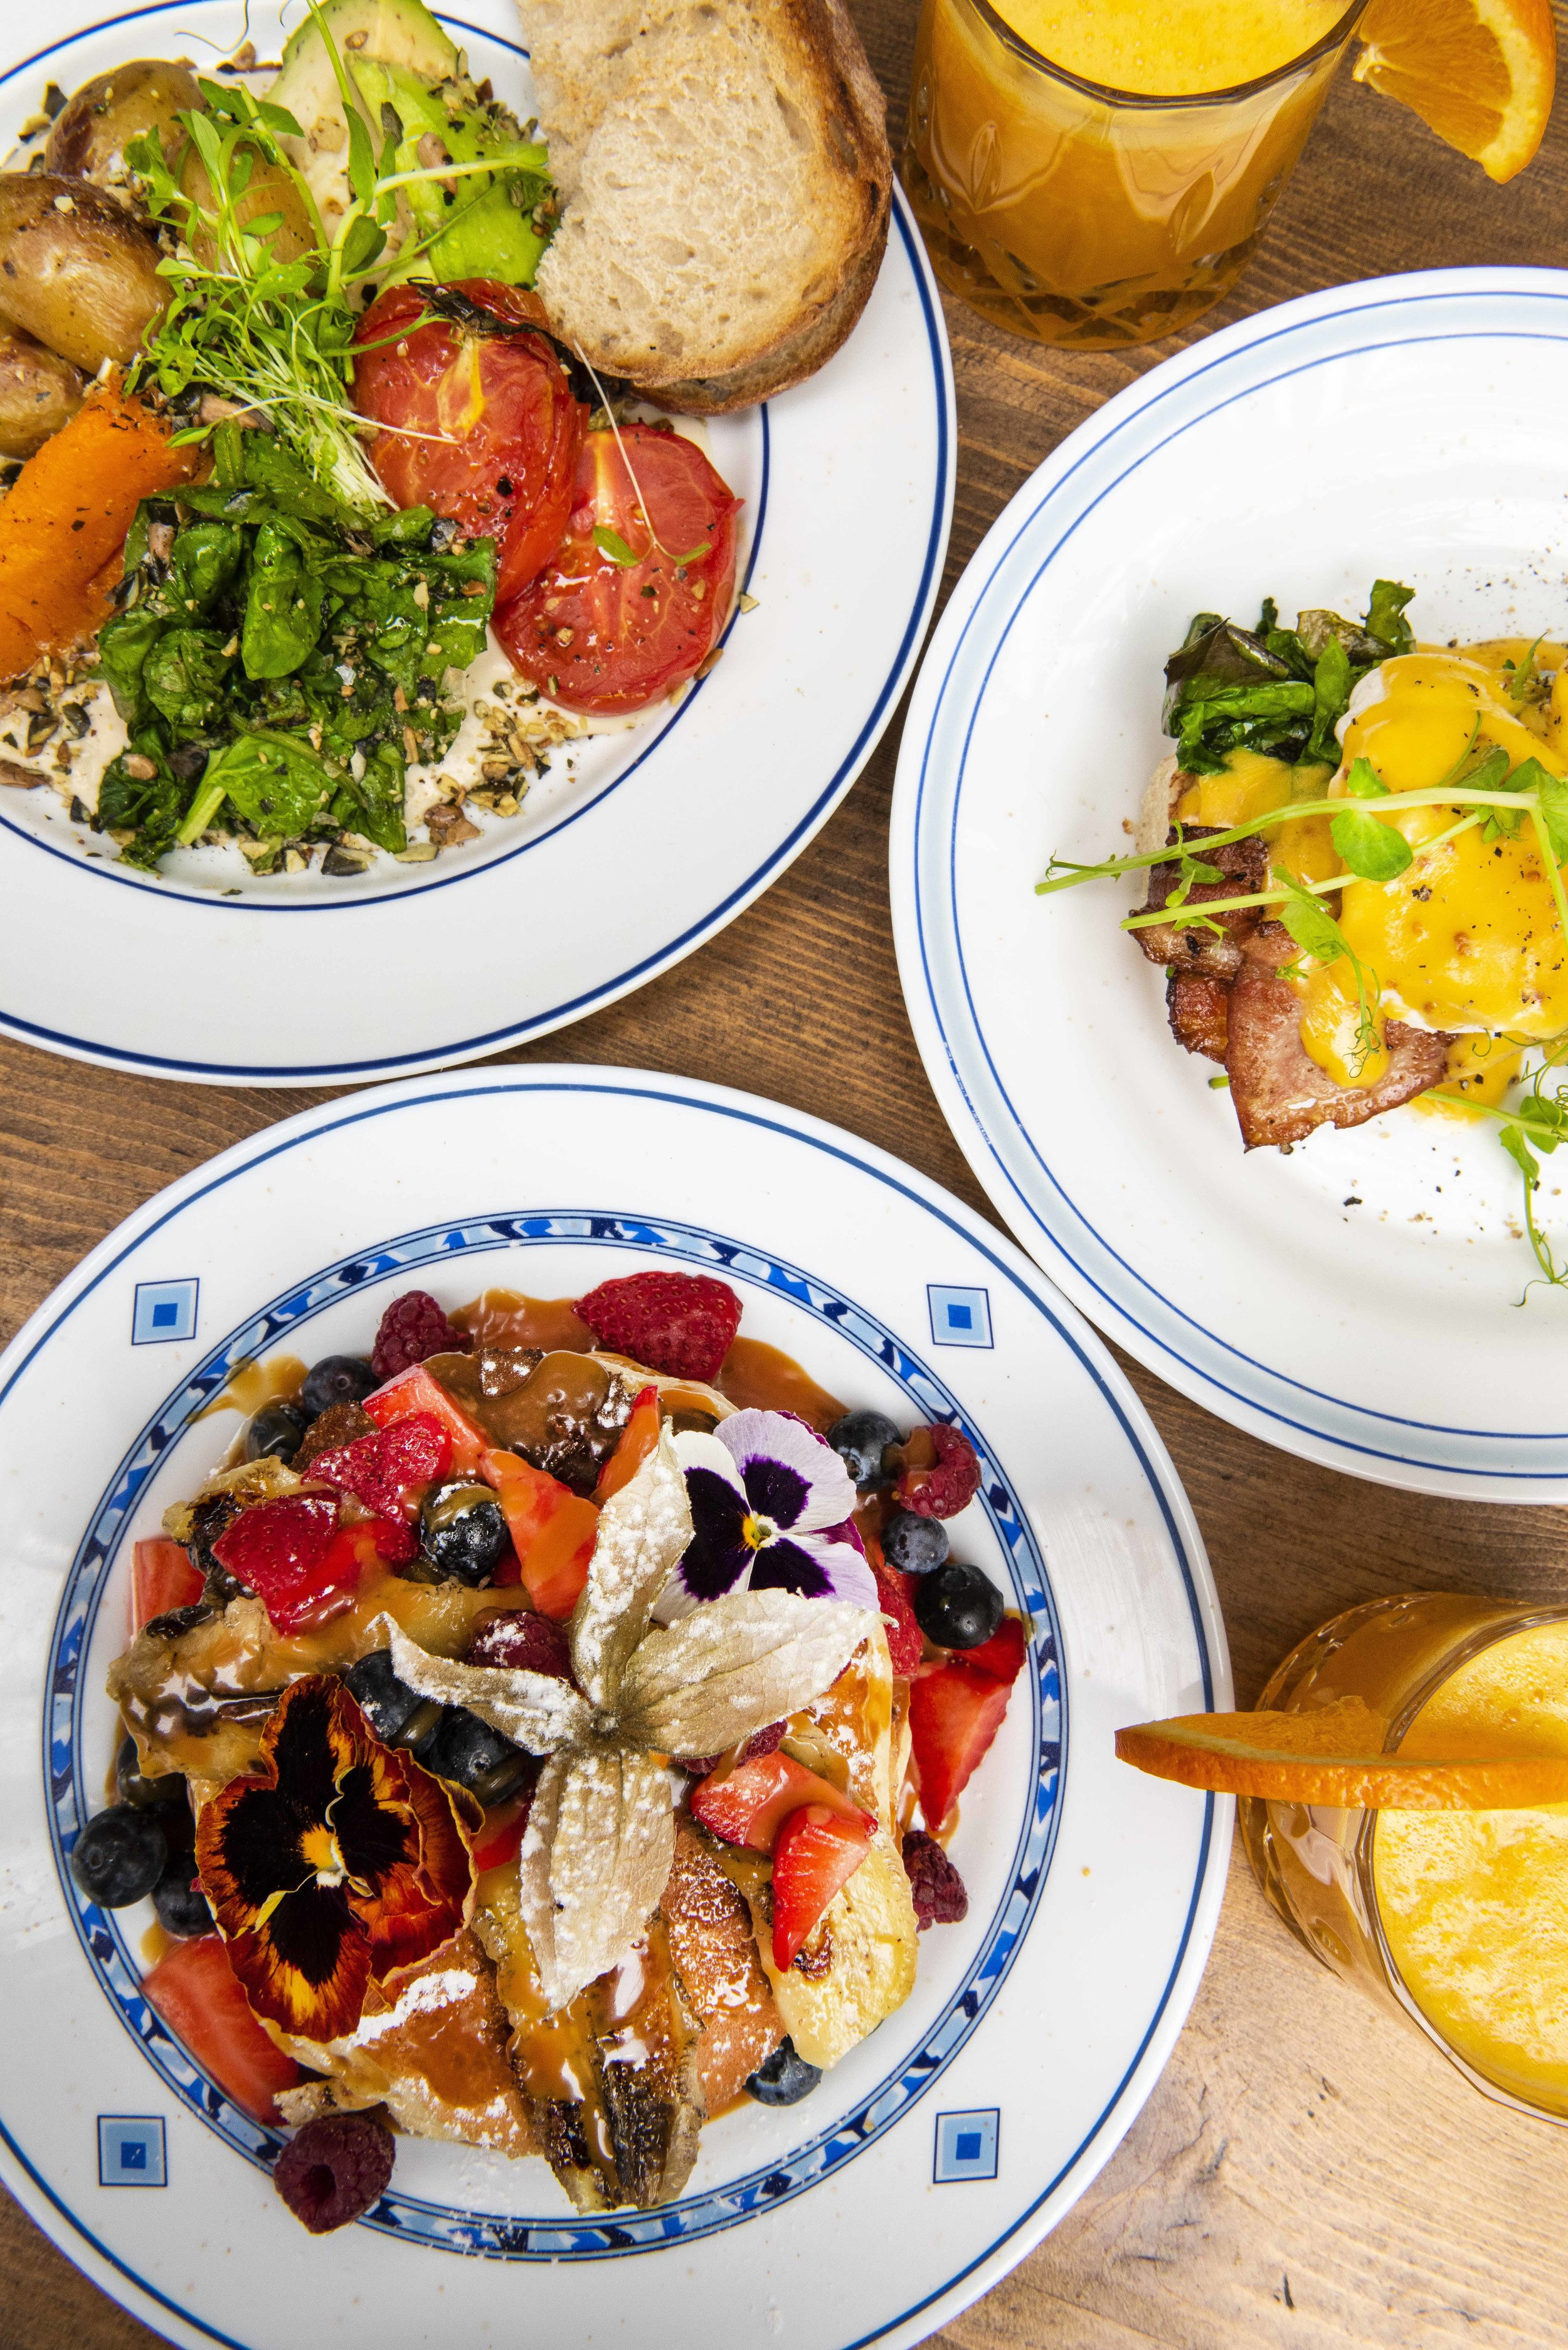 Brunch at Cremat 11, Barcelona. Photo © Barcelona Food Experience.